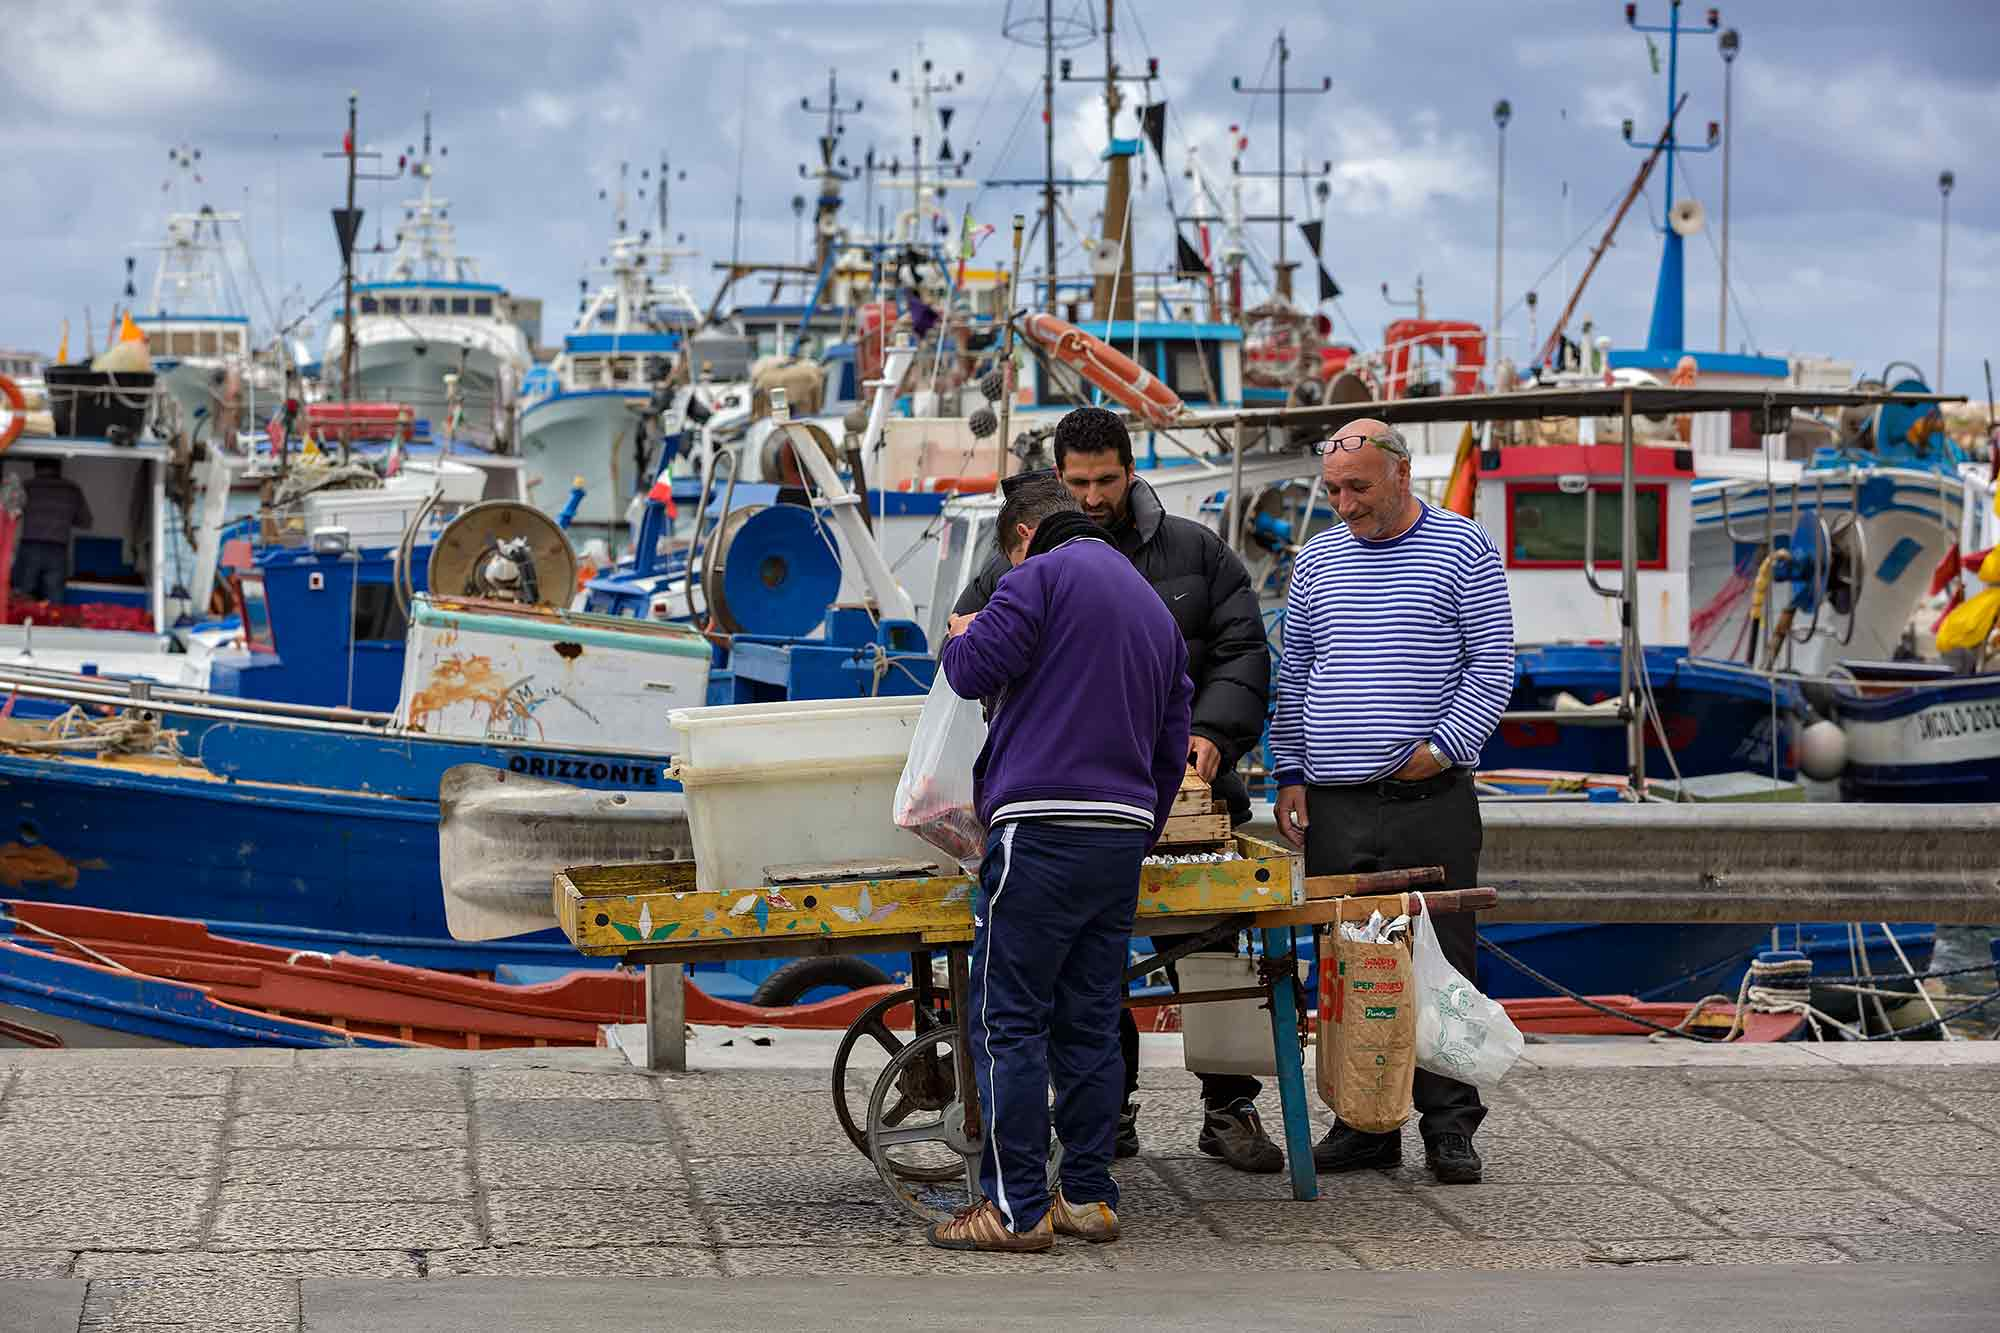 At the fish market in the harbour of Trapani, Sicily. © Ulli Maier & Nisa Maier